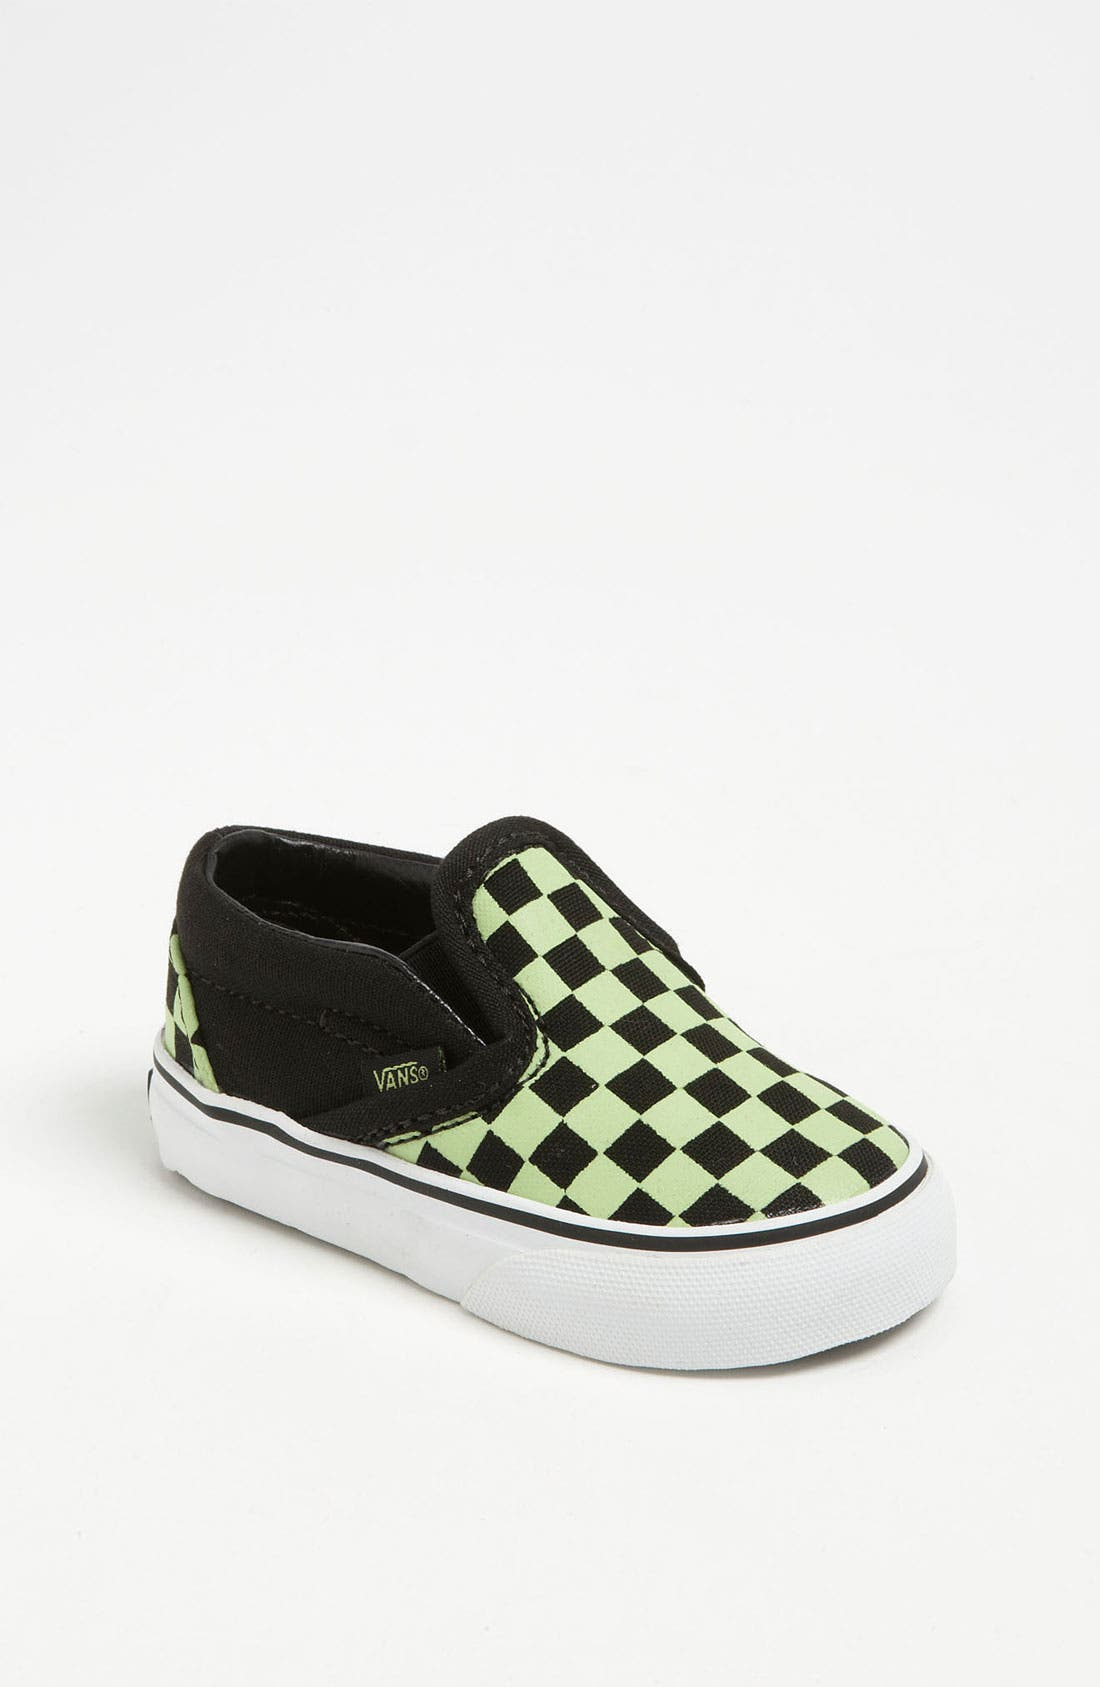 Main Image - Vans 'Classic Checker - Glow in the Dark' Slip-On (Baby, Walker & Toddler)